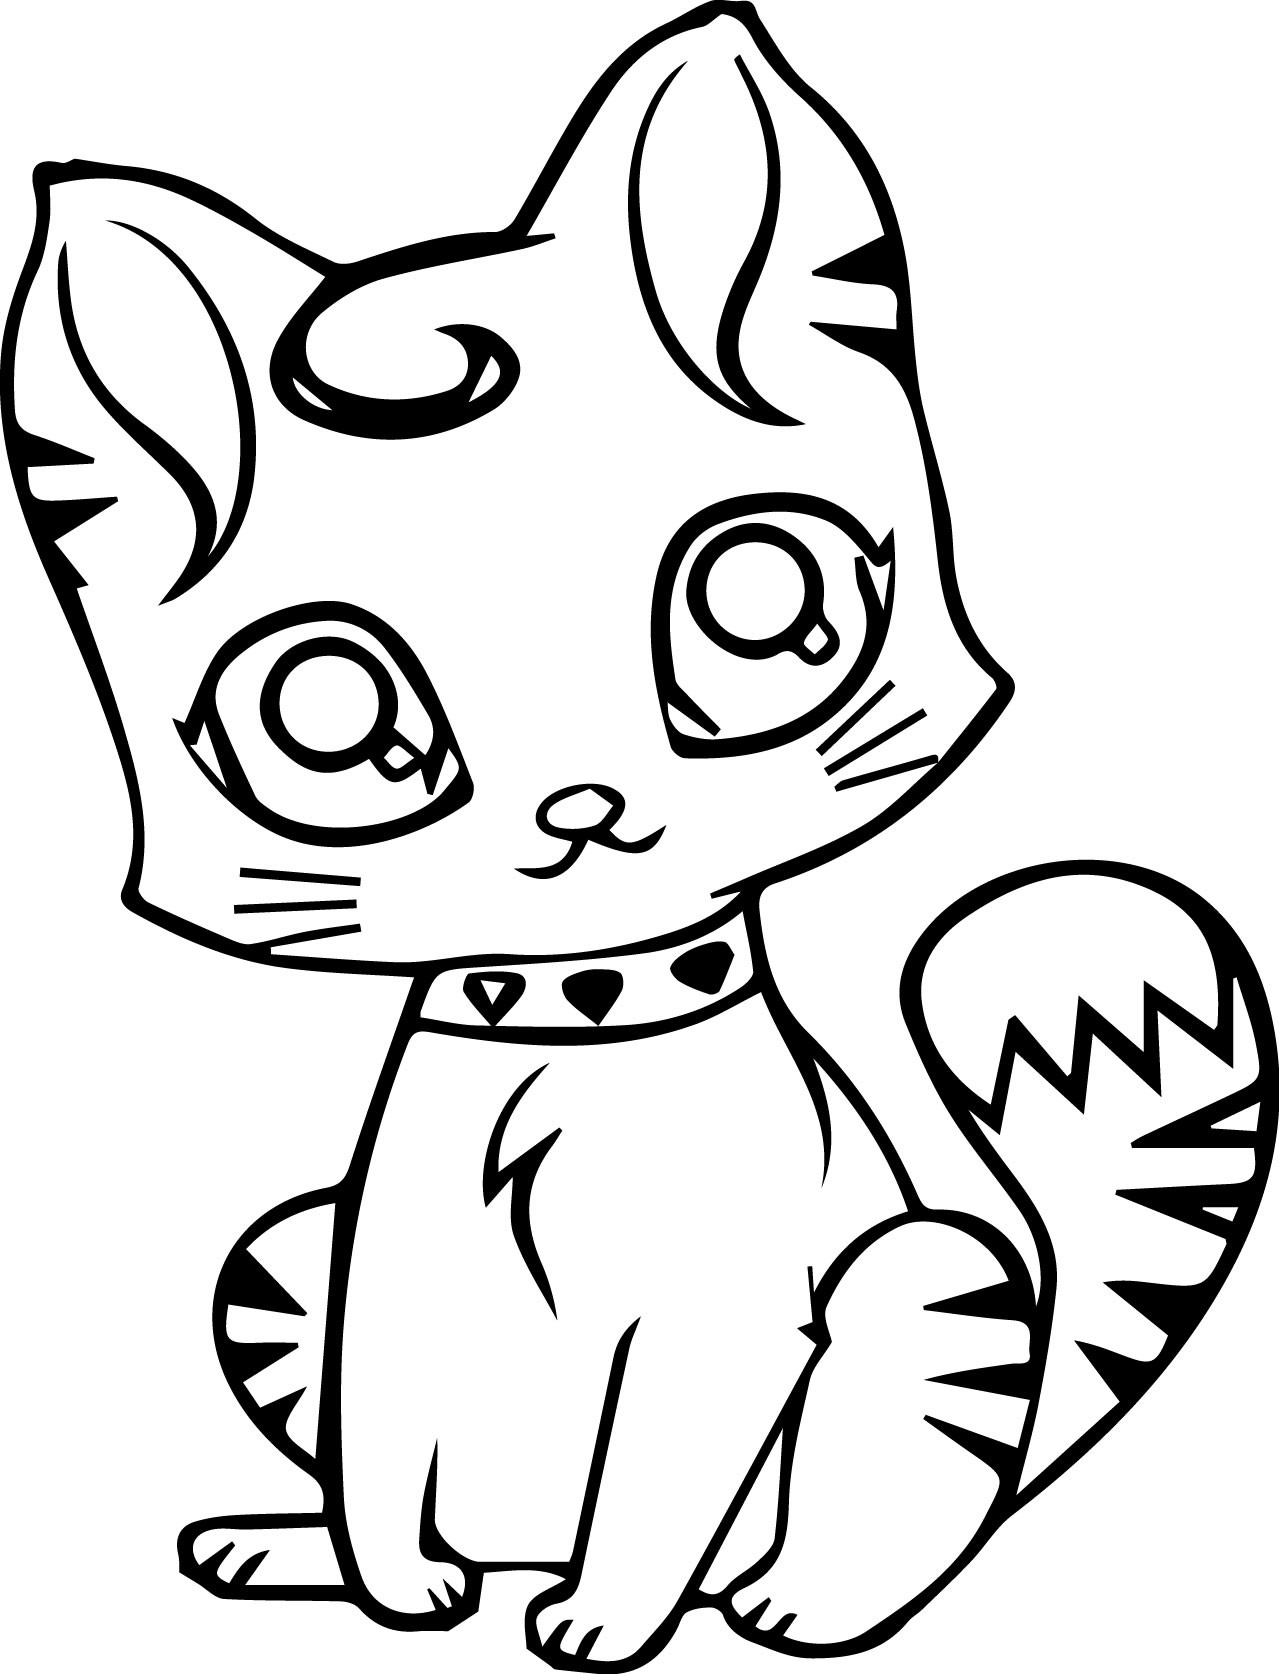 coloring pages kitty free printable hello kitty coloring pages for pages kitty pages coloring